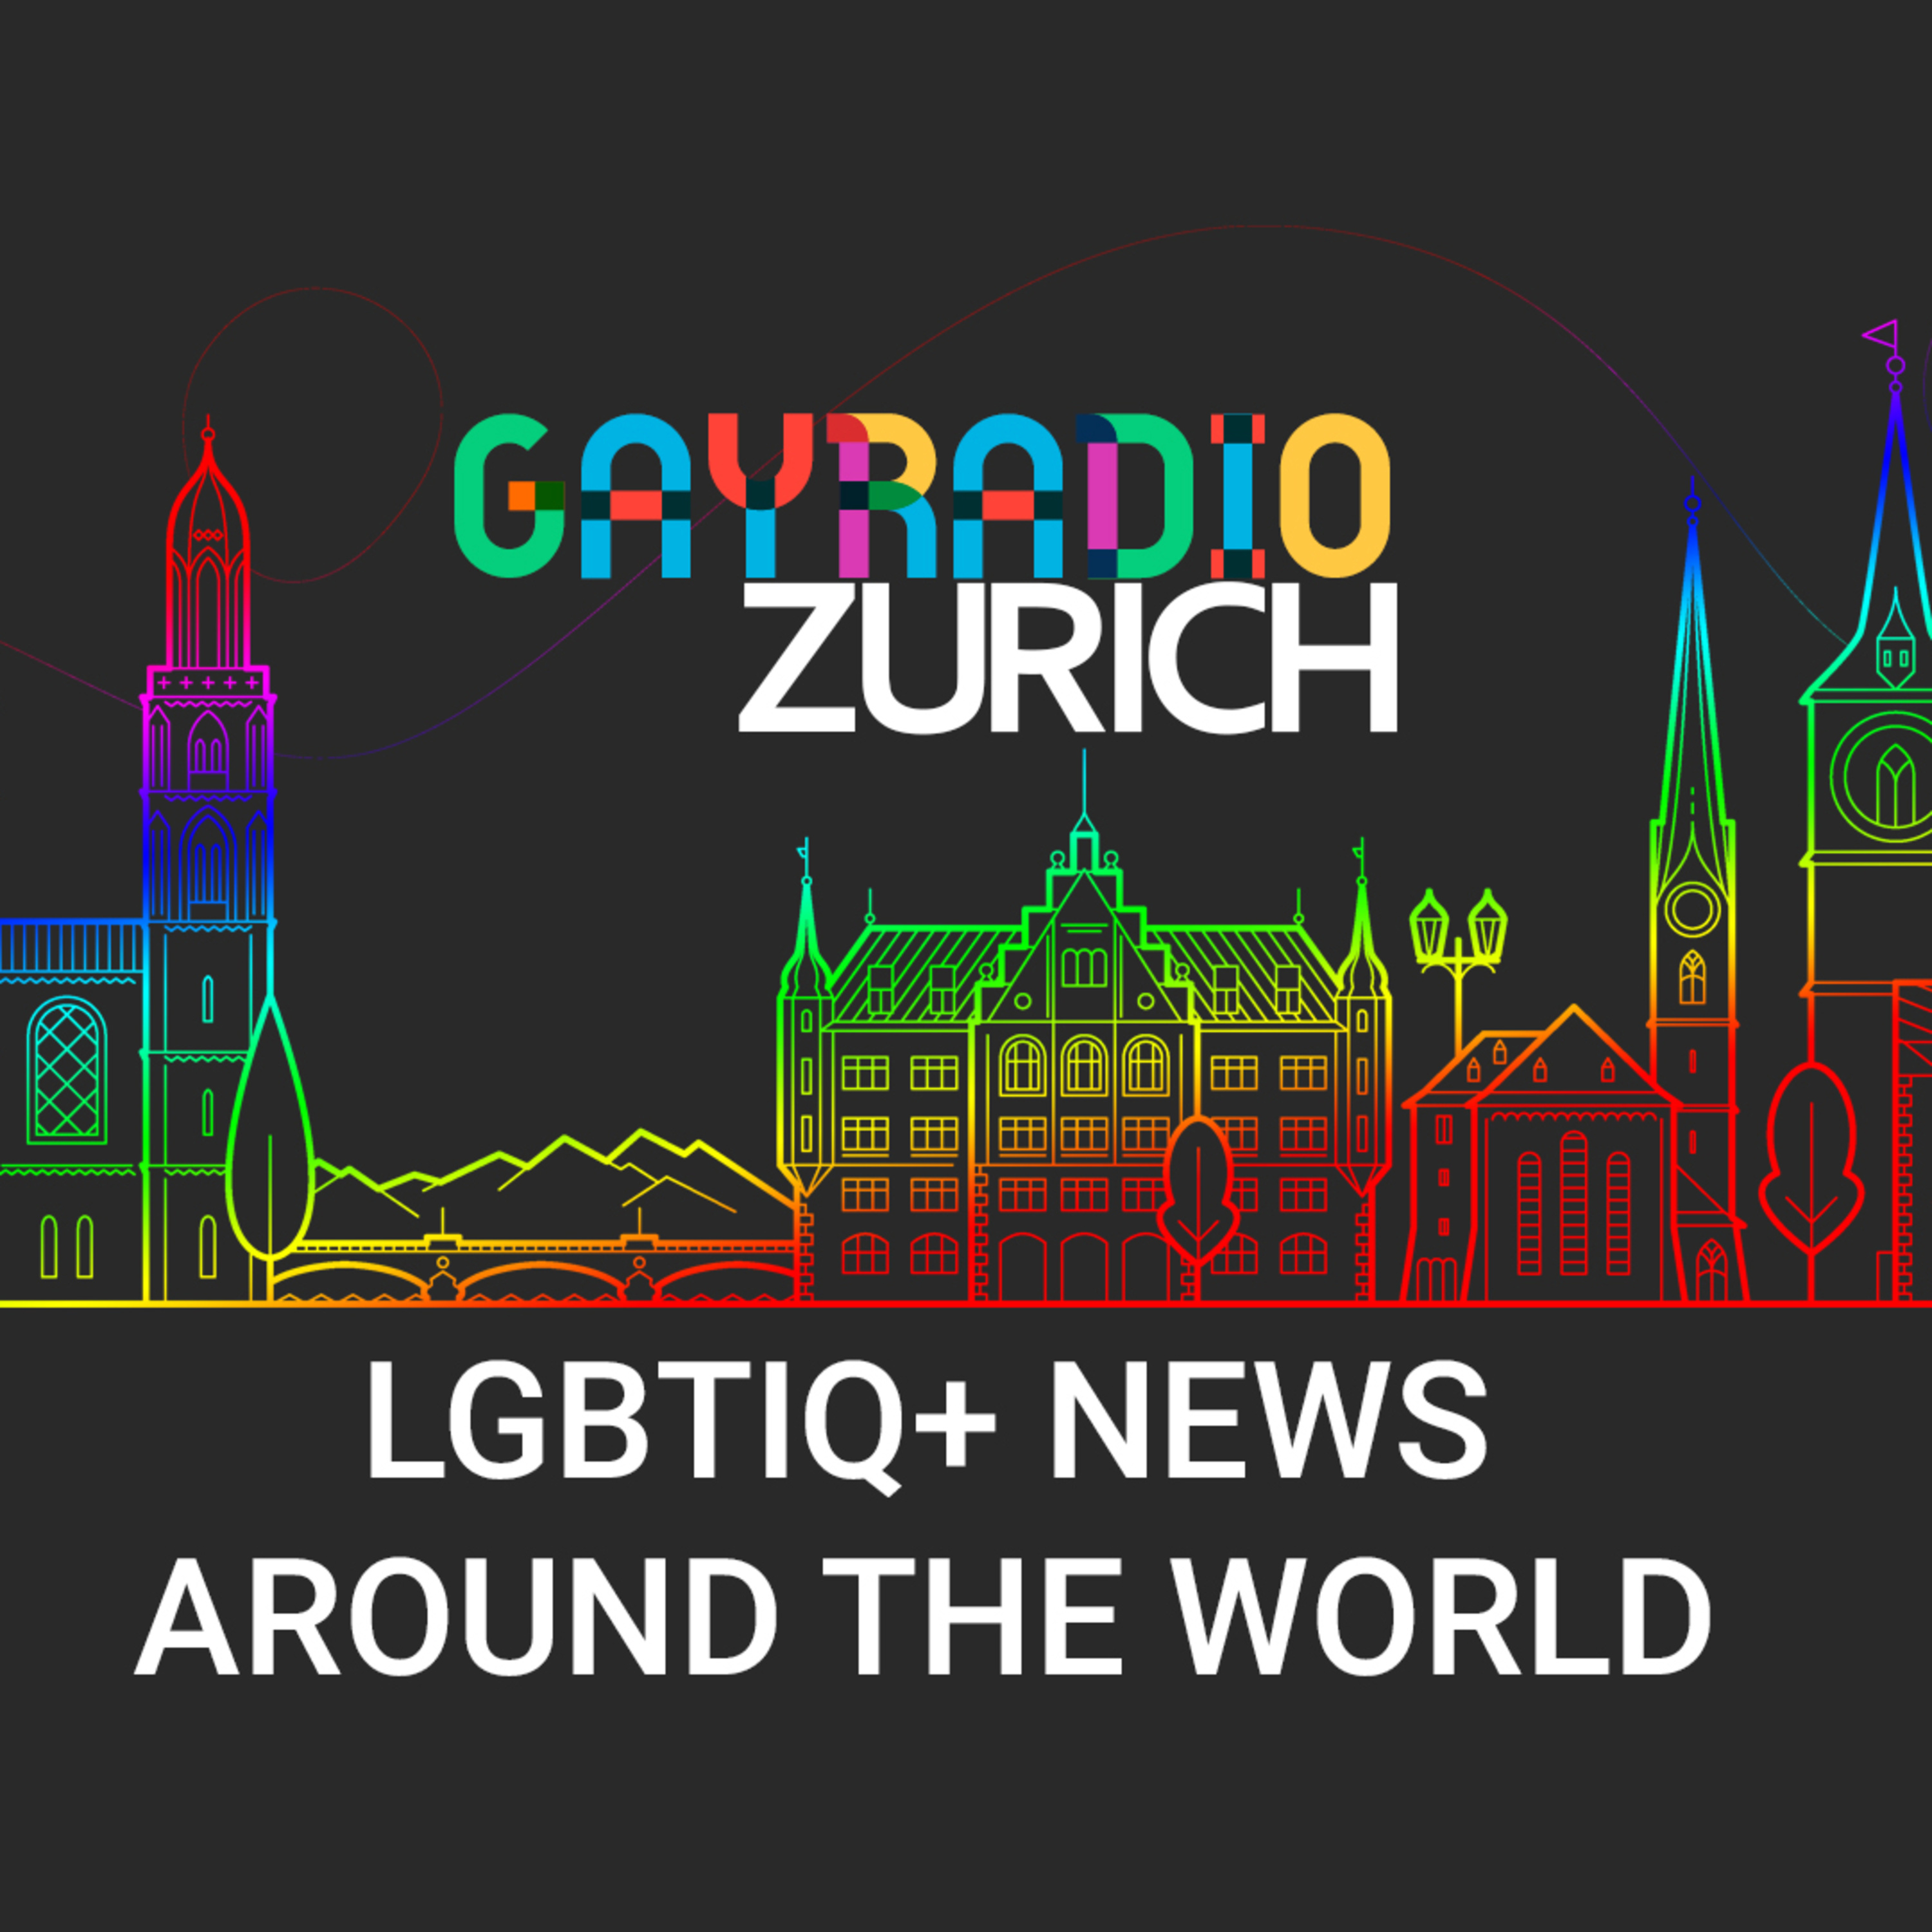 LGBTIQ+ News from around the world | GAYRADIO Zurich vom 29. Juni 2019